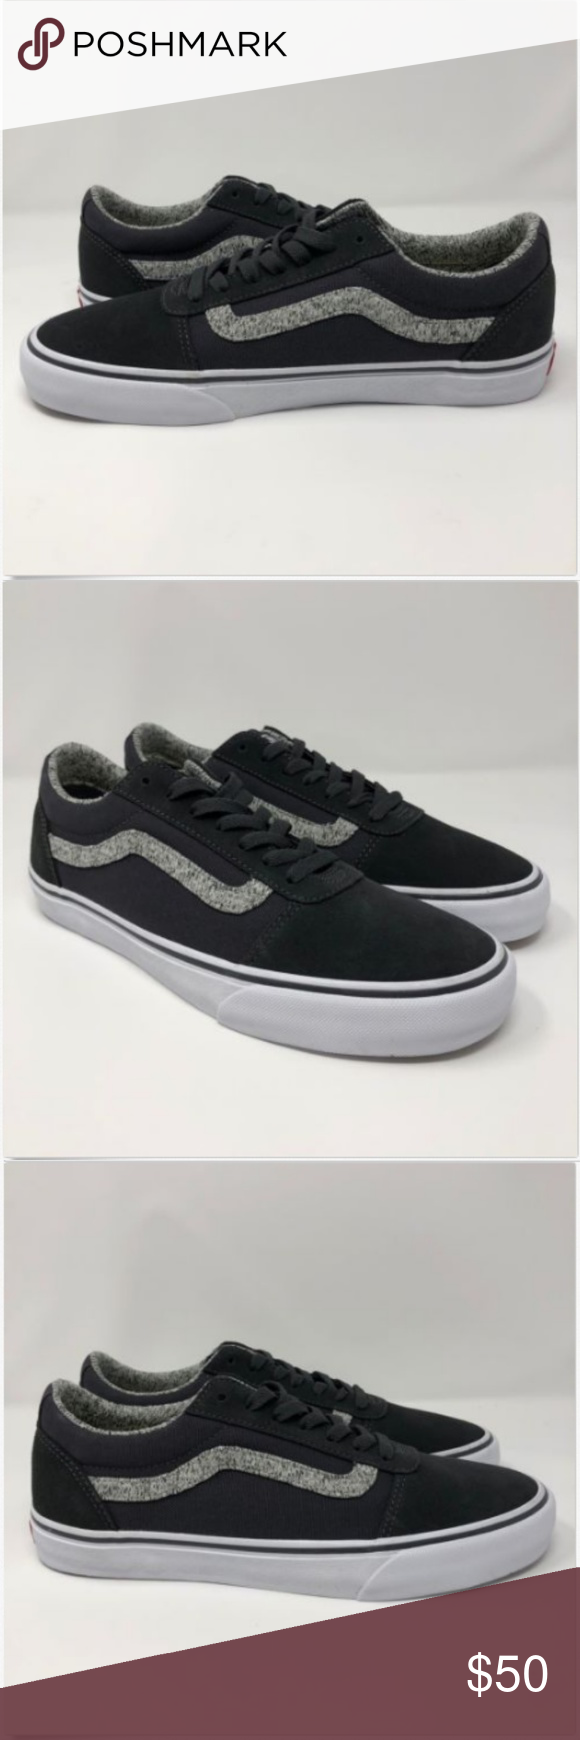 Vans Mens 9 Shoes Ortholite Ward Deluxe Hygge NEW Vans Mens 9 Shoes  Ortholite Ward Deluxe 56d4cd96a